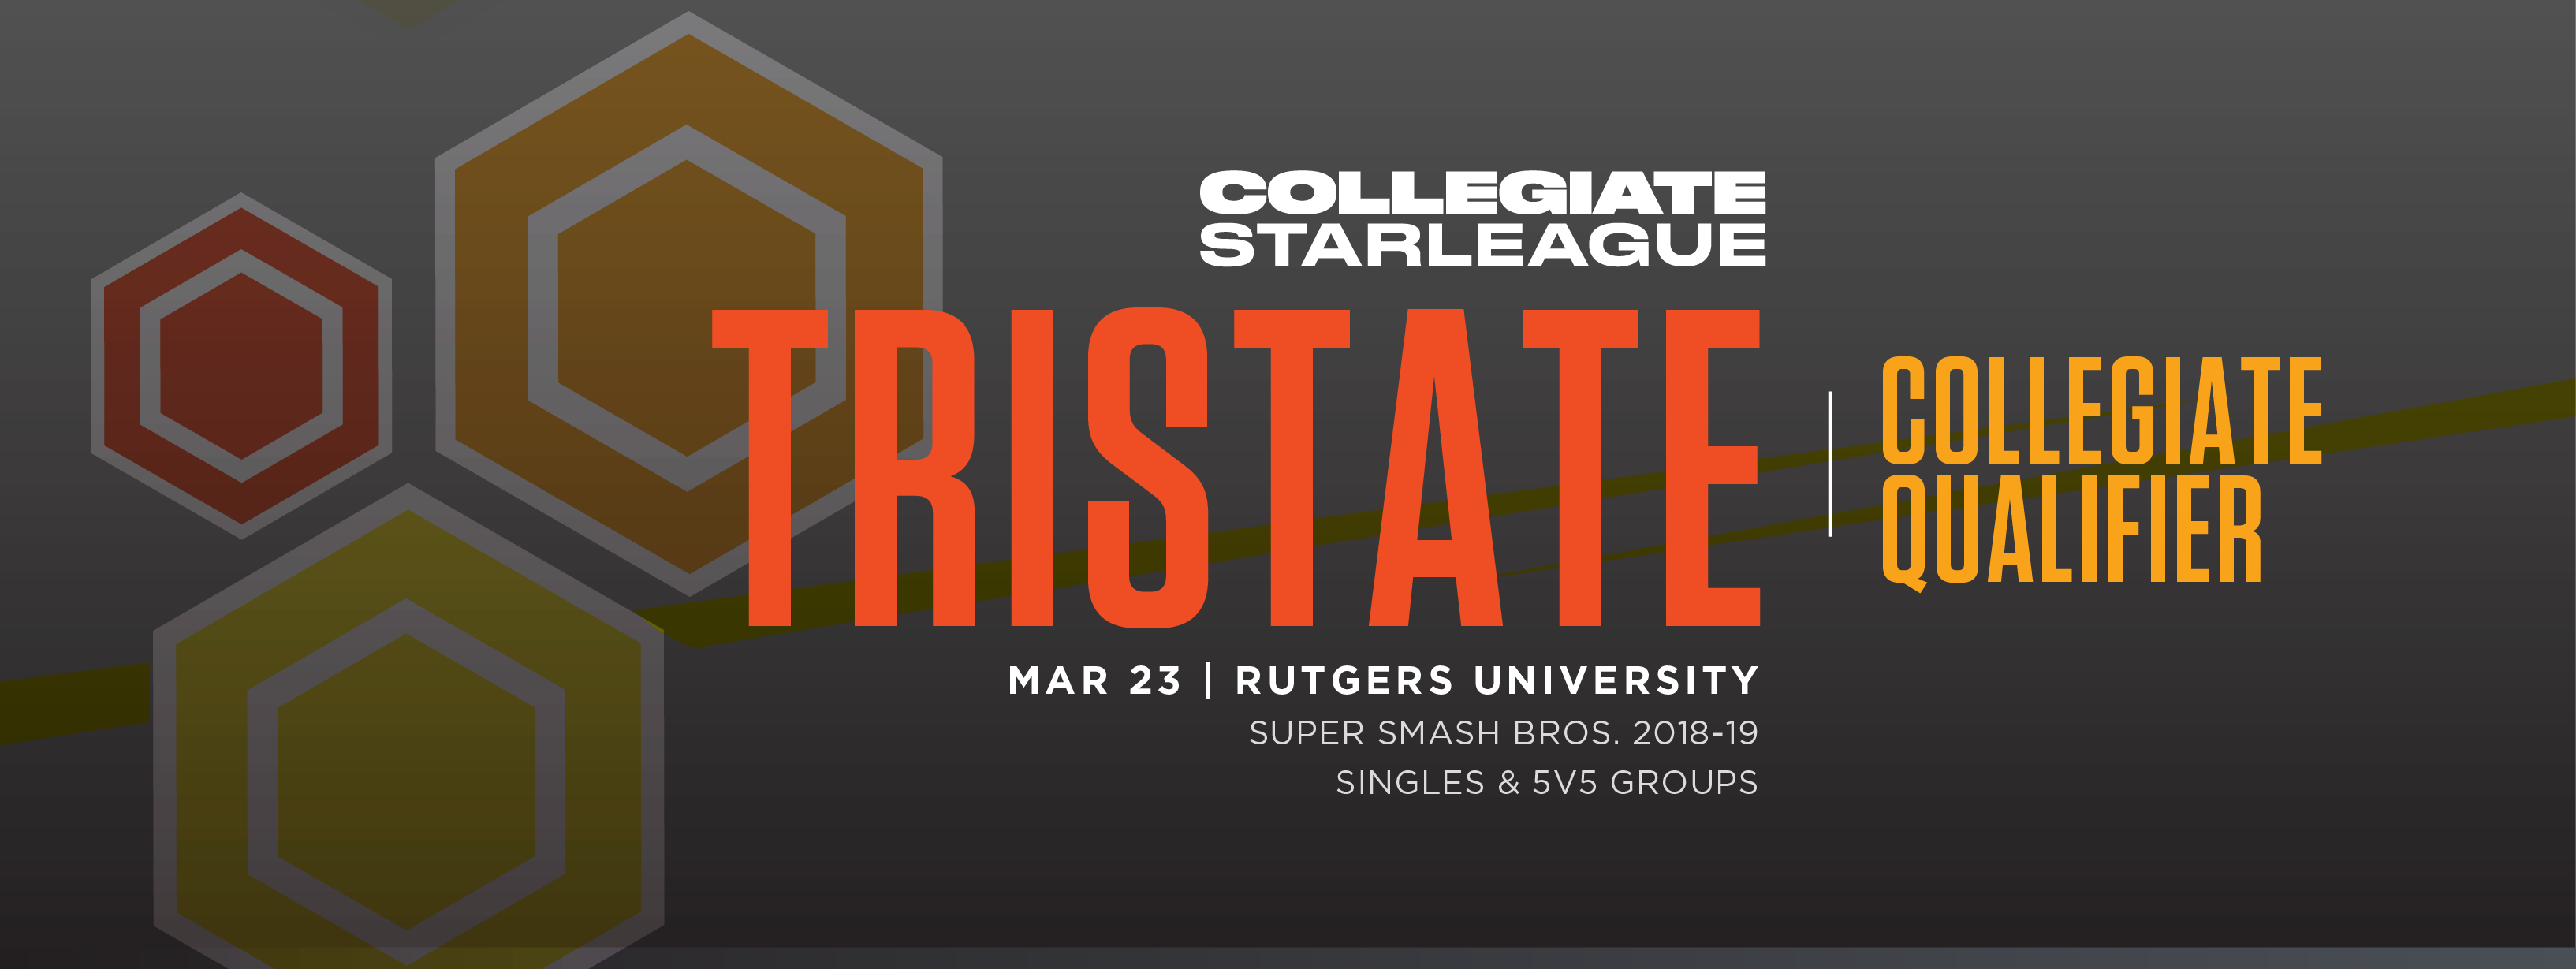 Smash local qualifier fb event image 2018 19 14